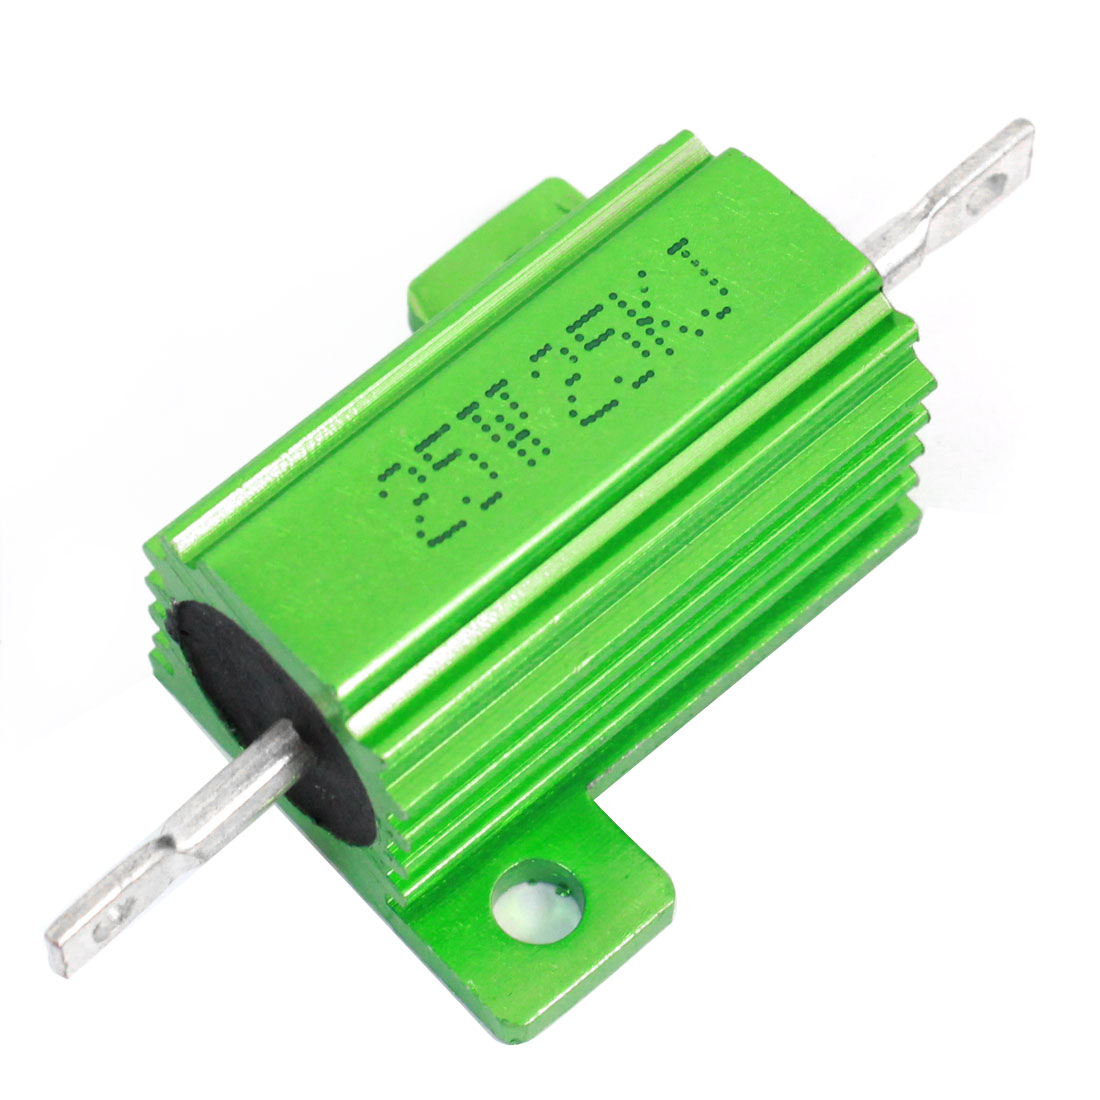 25W 25000 Ohm Axial Chassis Screw Mounted Aluminum Clad Resistor Green